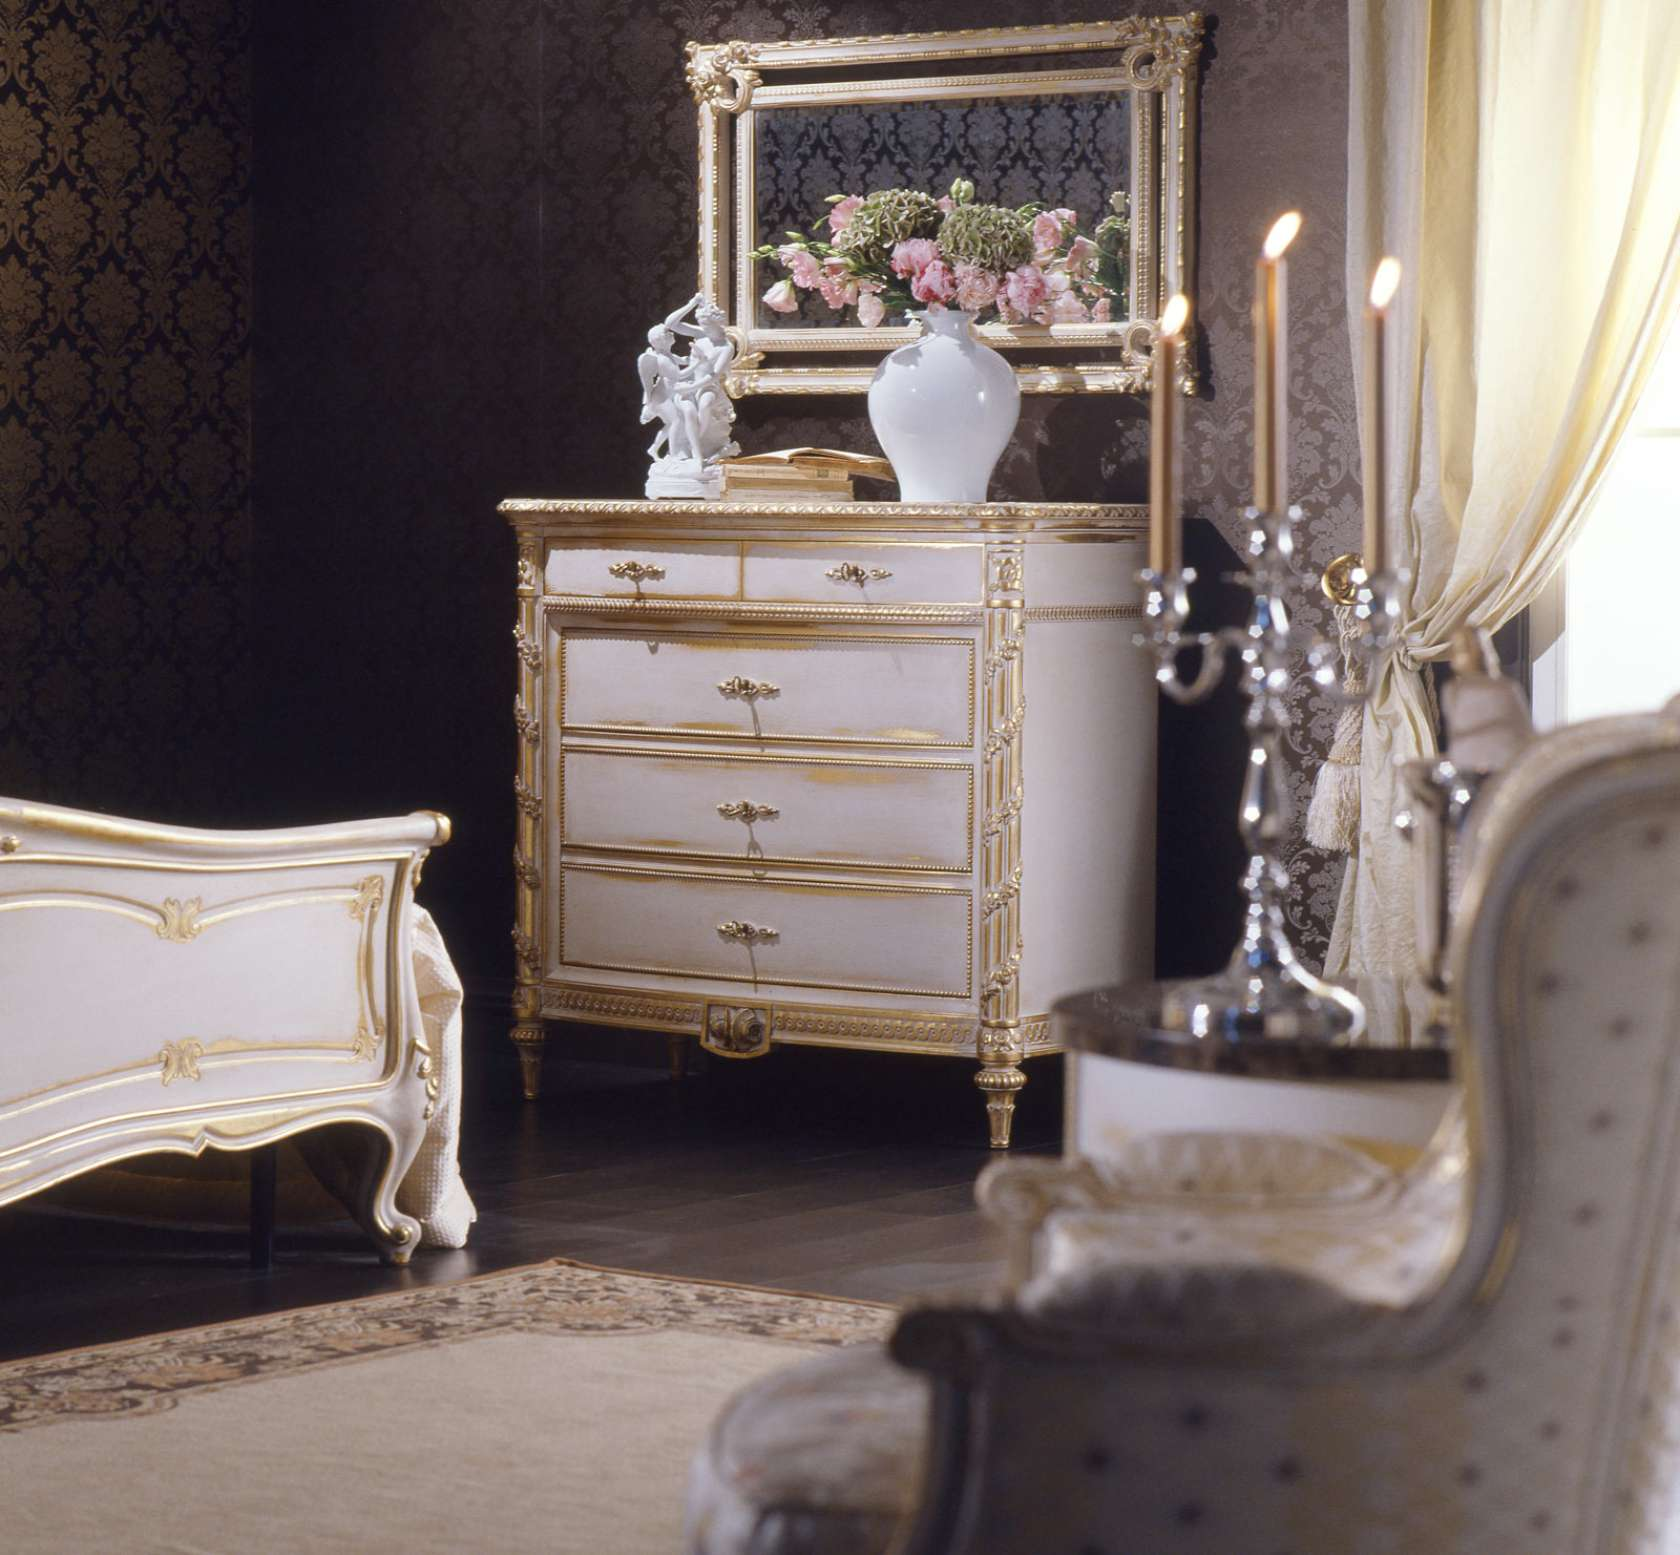 Louis xvi bedroom furniture - Classic Louis Xvi Bedroom Bed Chest Of Drawers Wall Mirror Finishing In